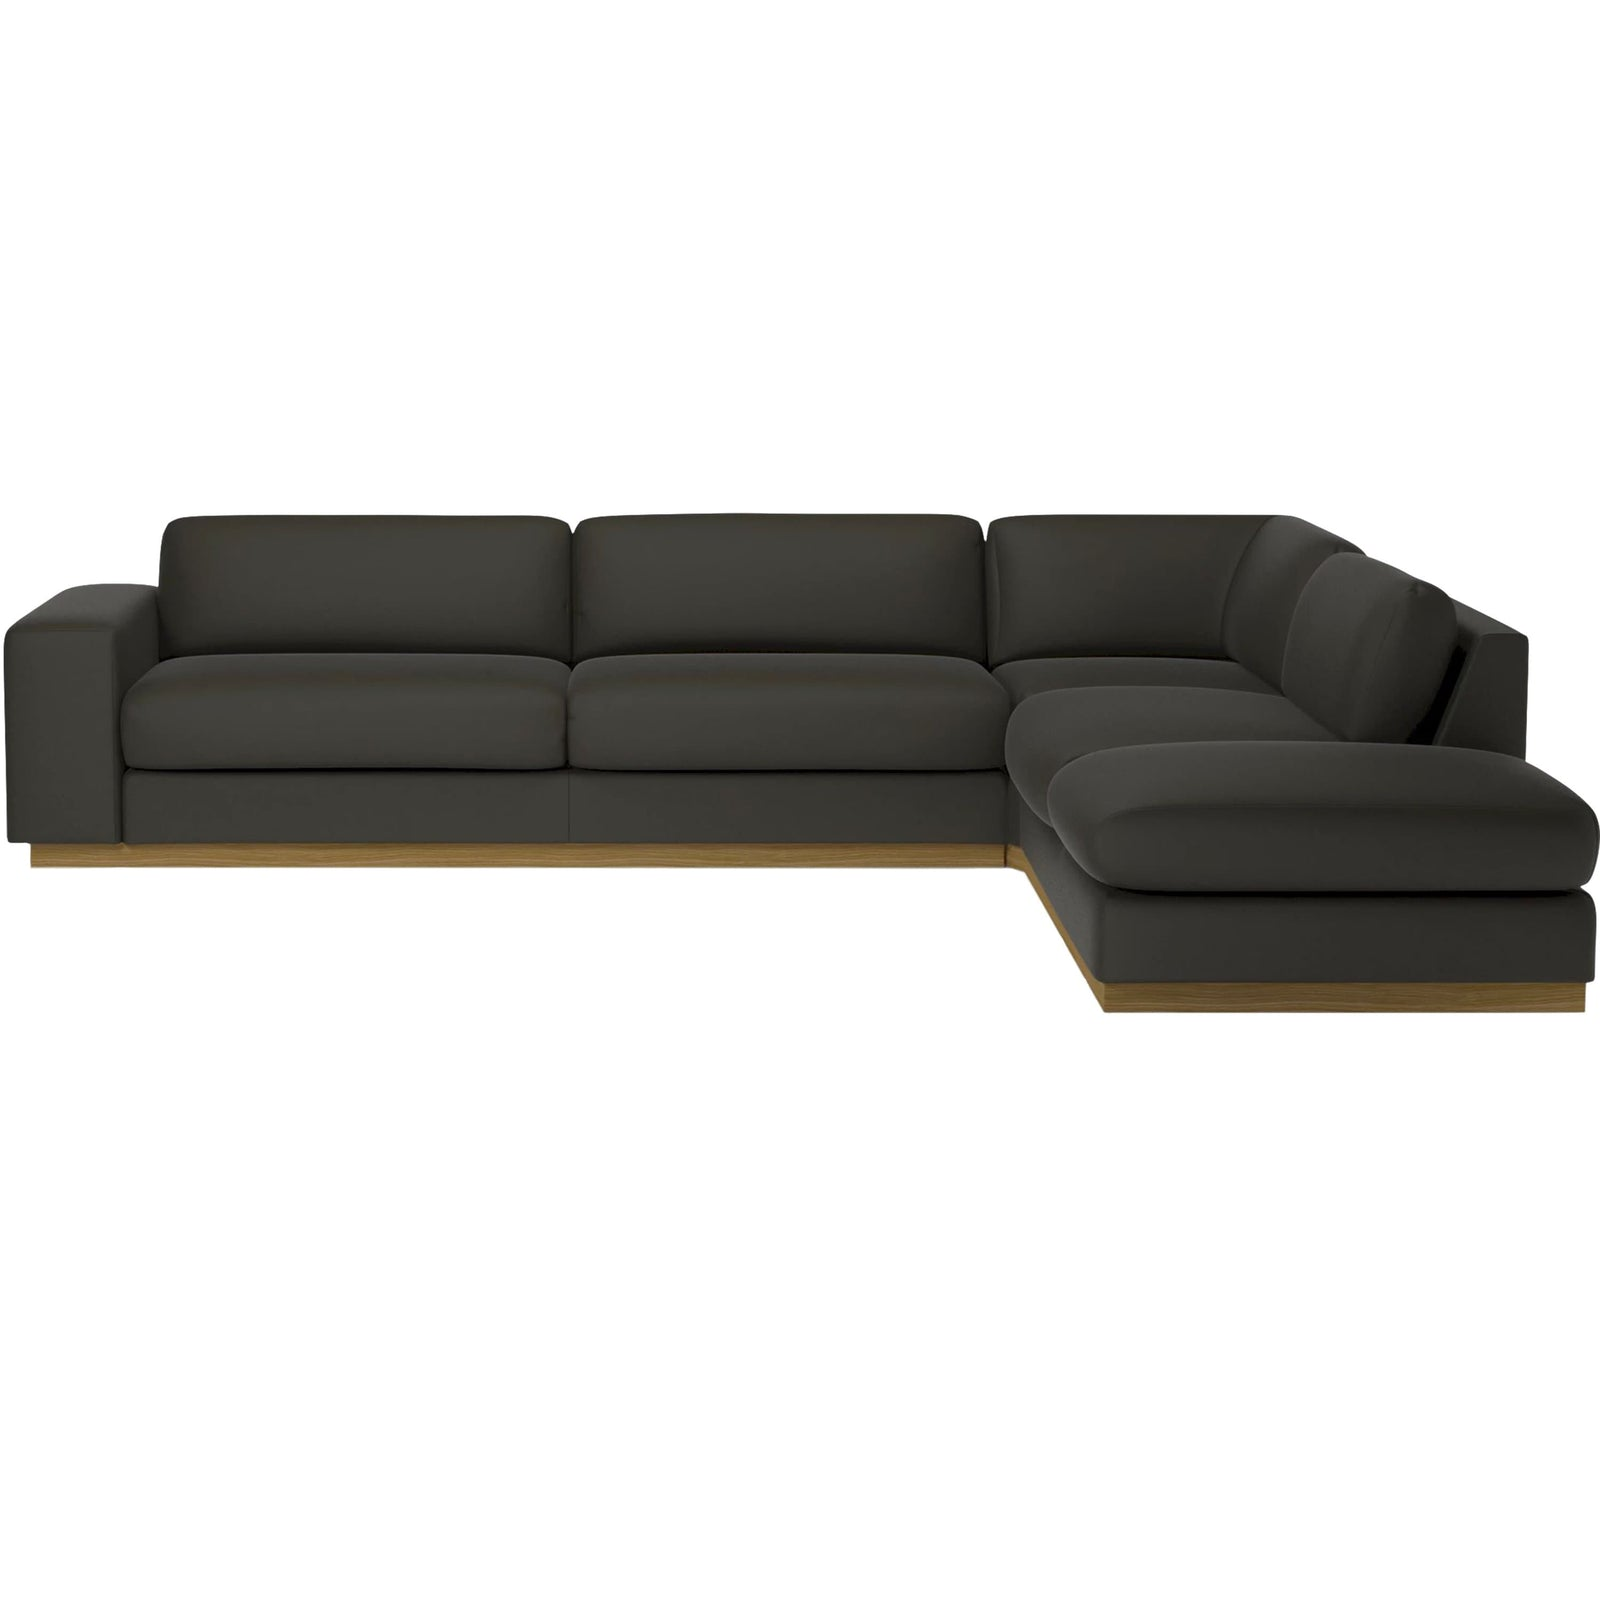 Bolia Furniture Sepia 6 Seater Sofa